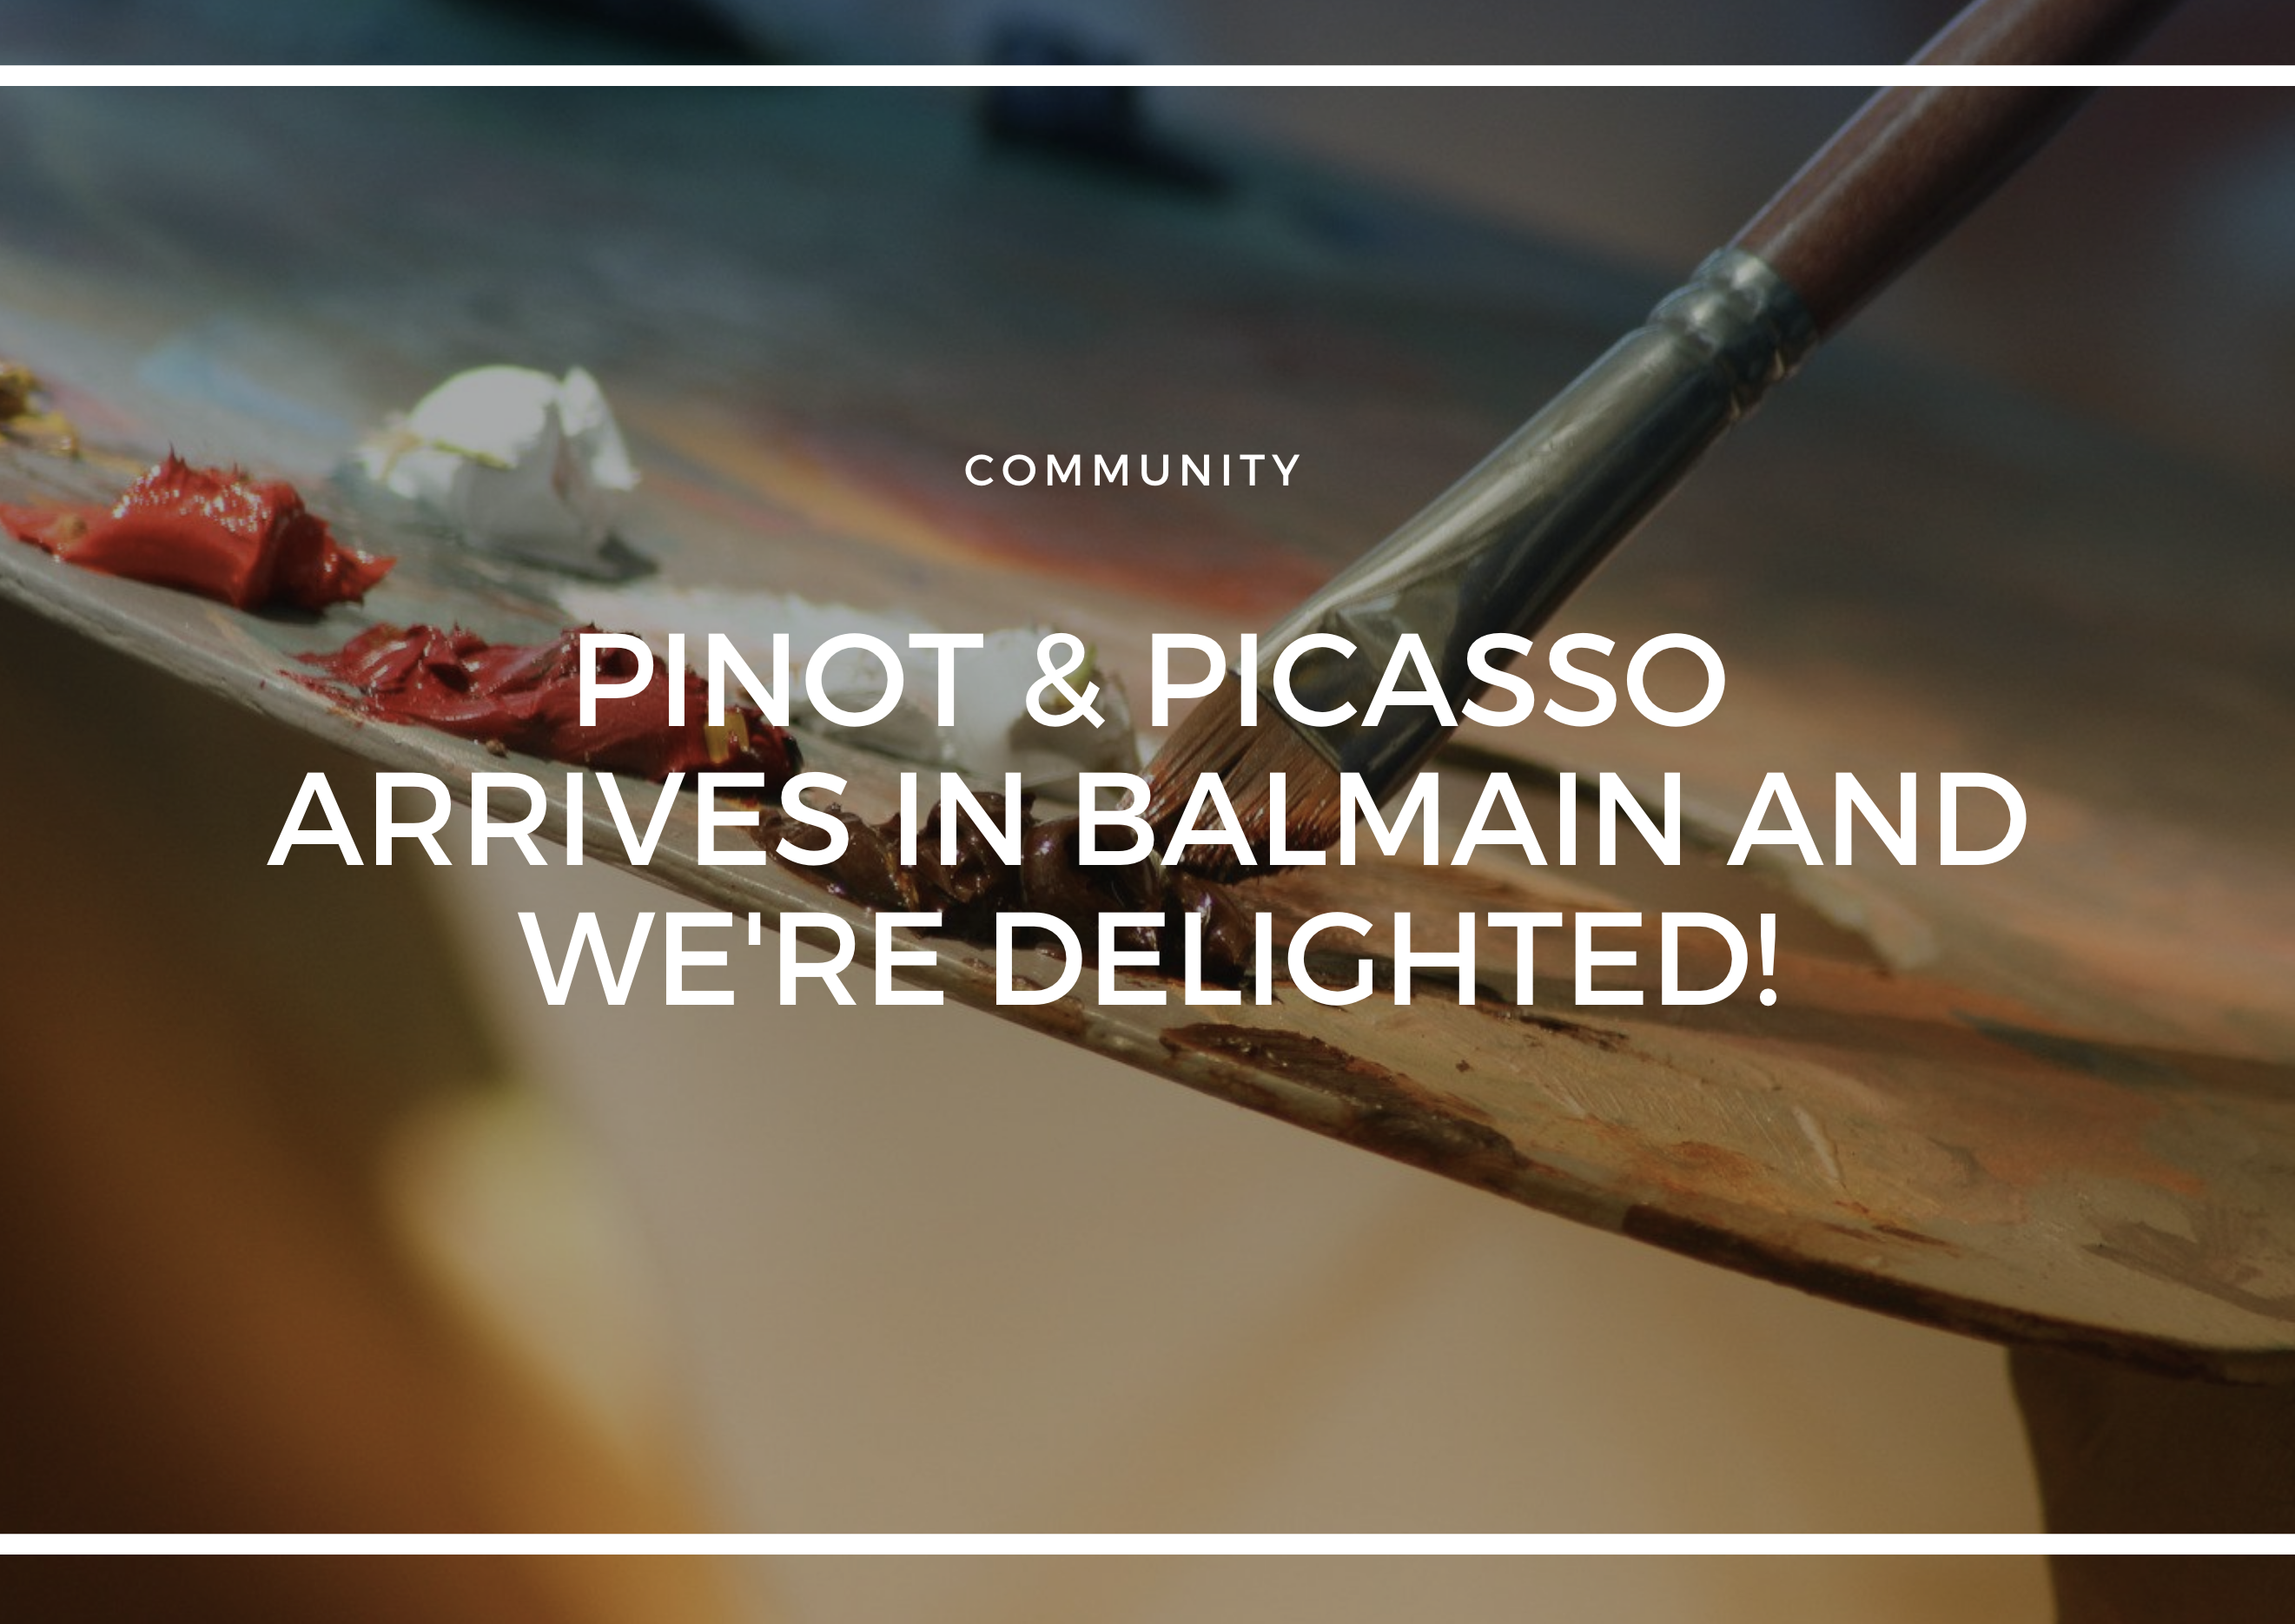 PINOT & PICASSO ARRIVES IN BALMAIN AND WE'RE DELIGHTED!